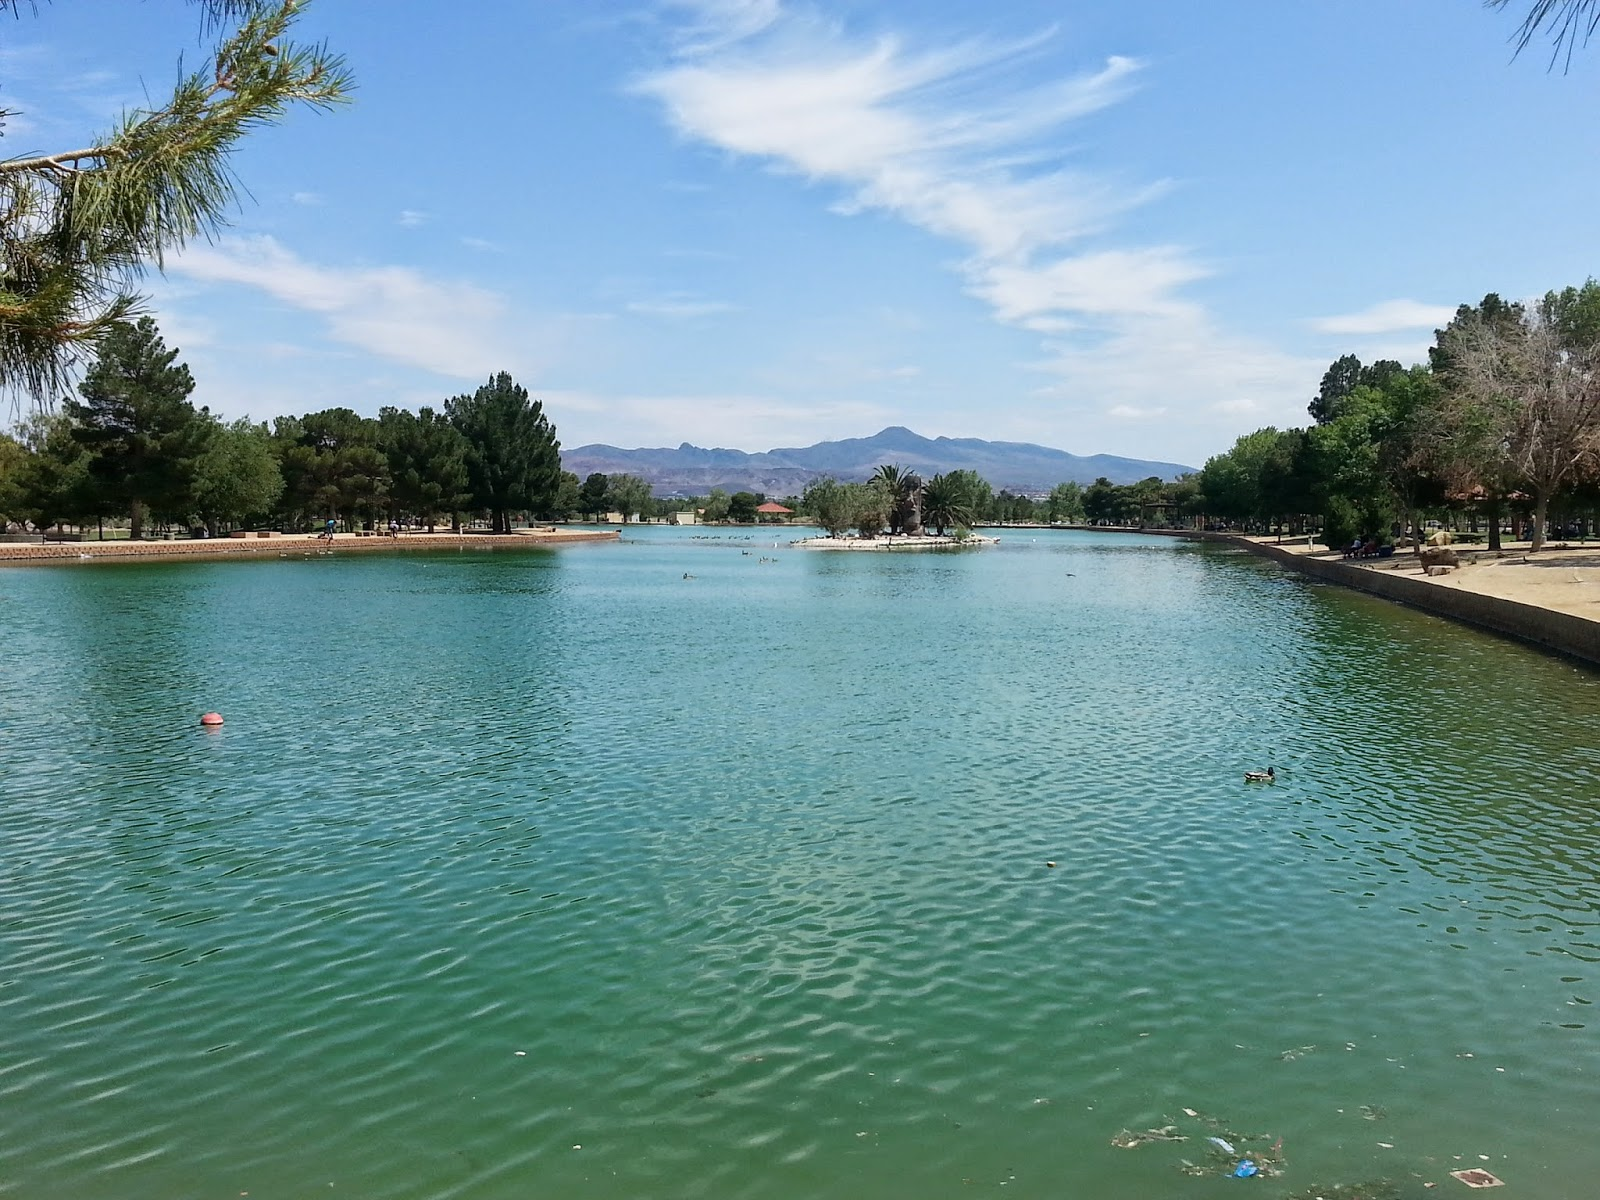 family friendly pools and parks in Las Vegas - Sunset Park Pond